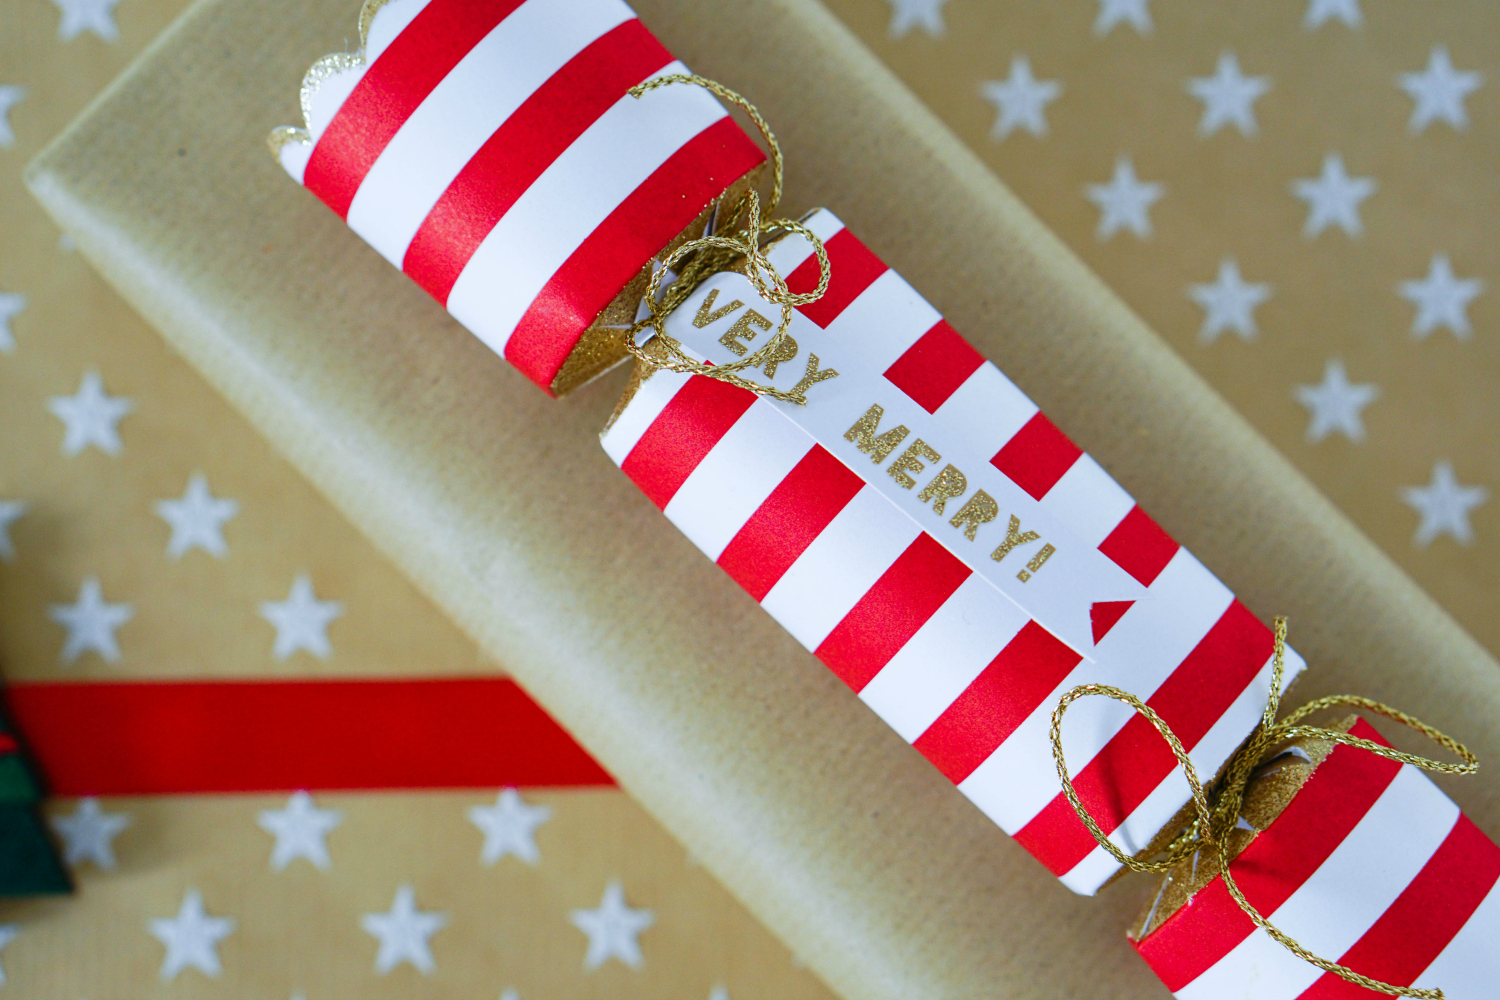 The Ordinary Lovely: Fun and festive wrapping ideas